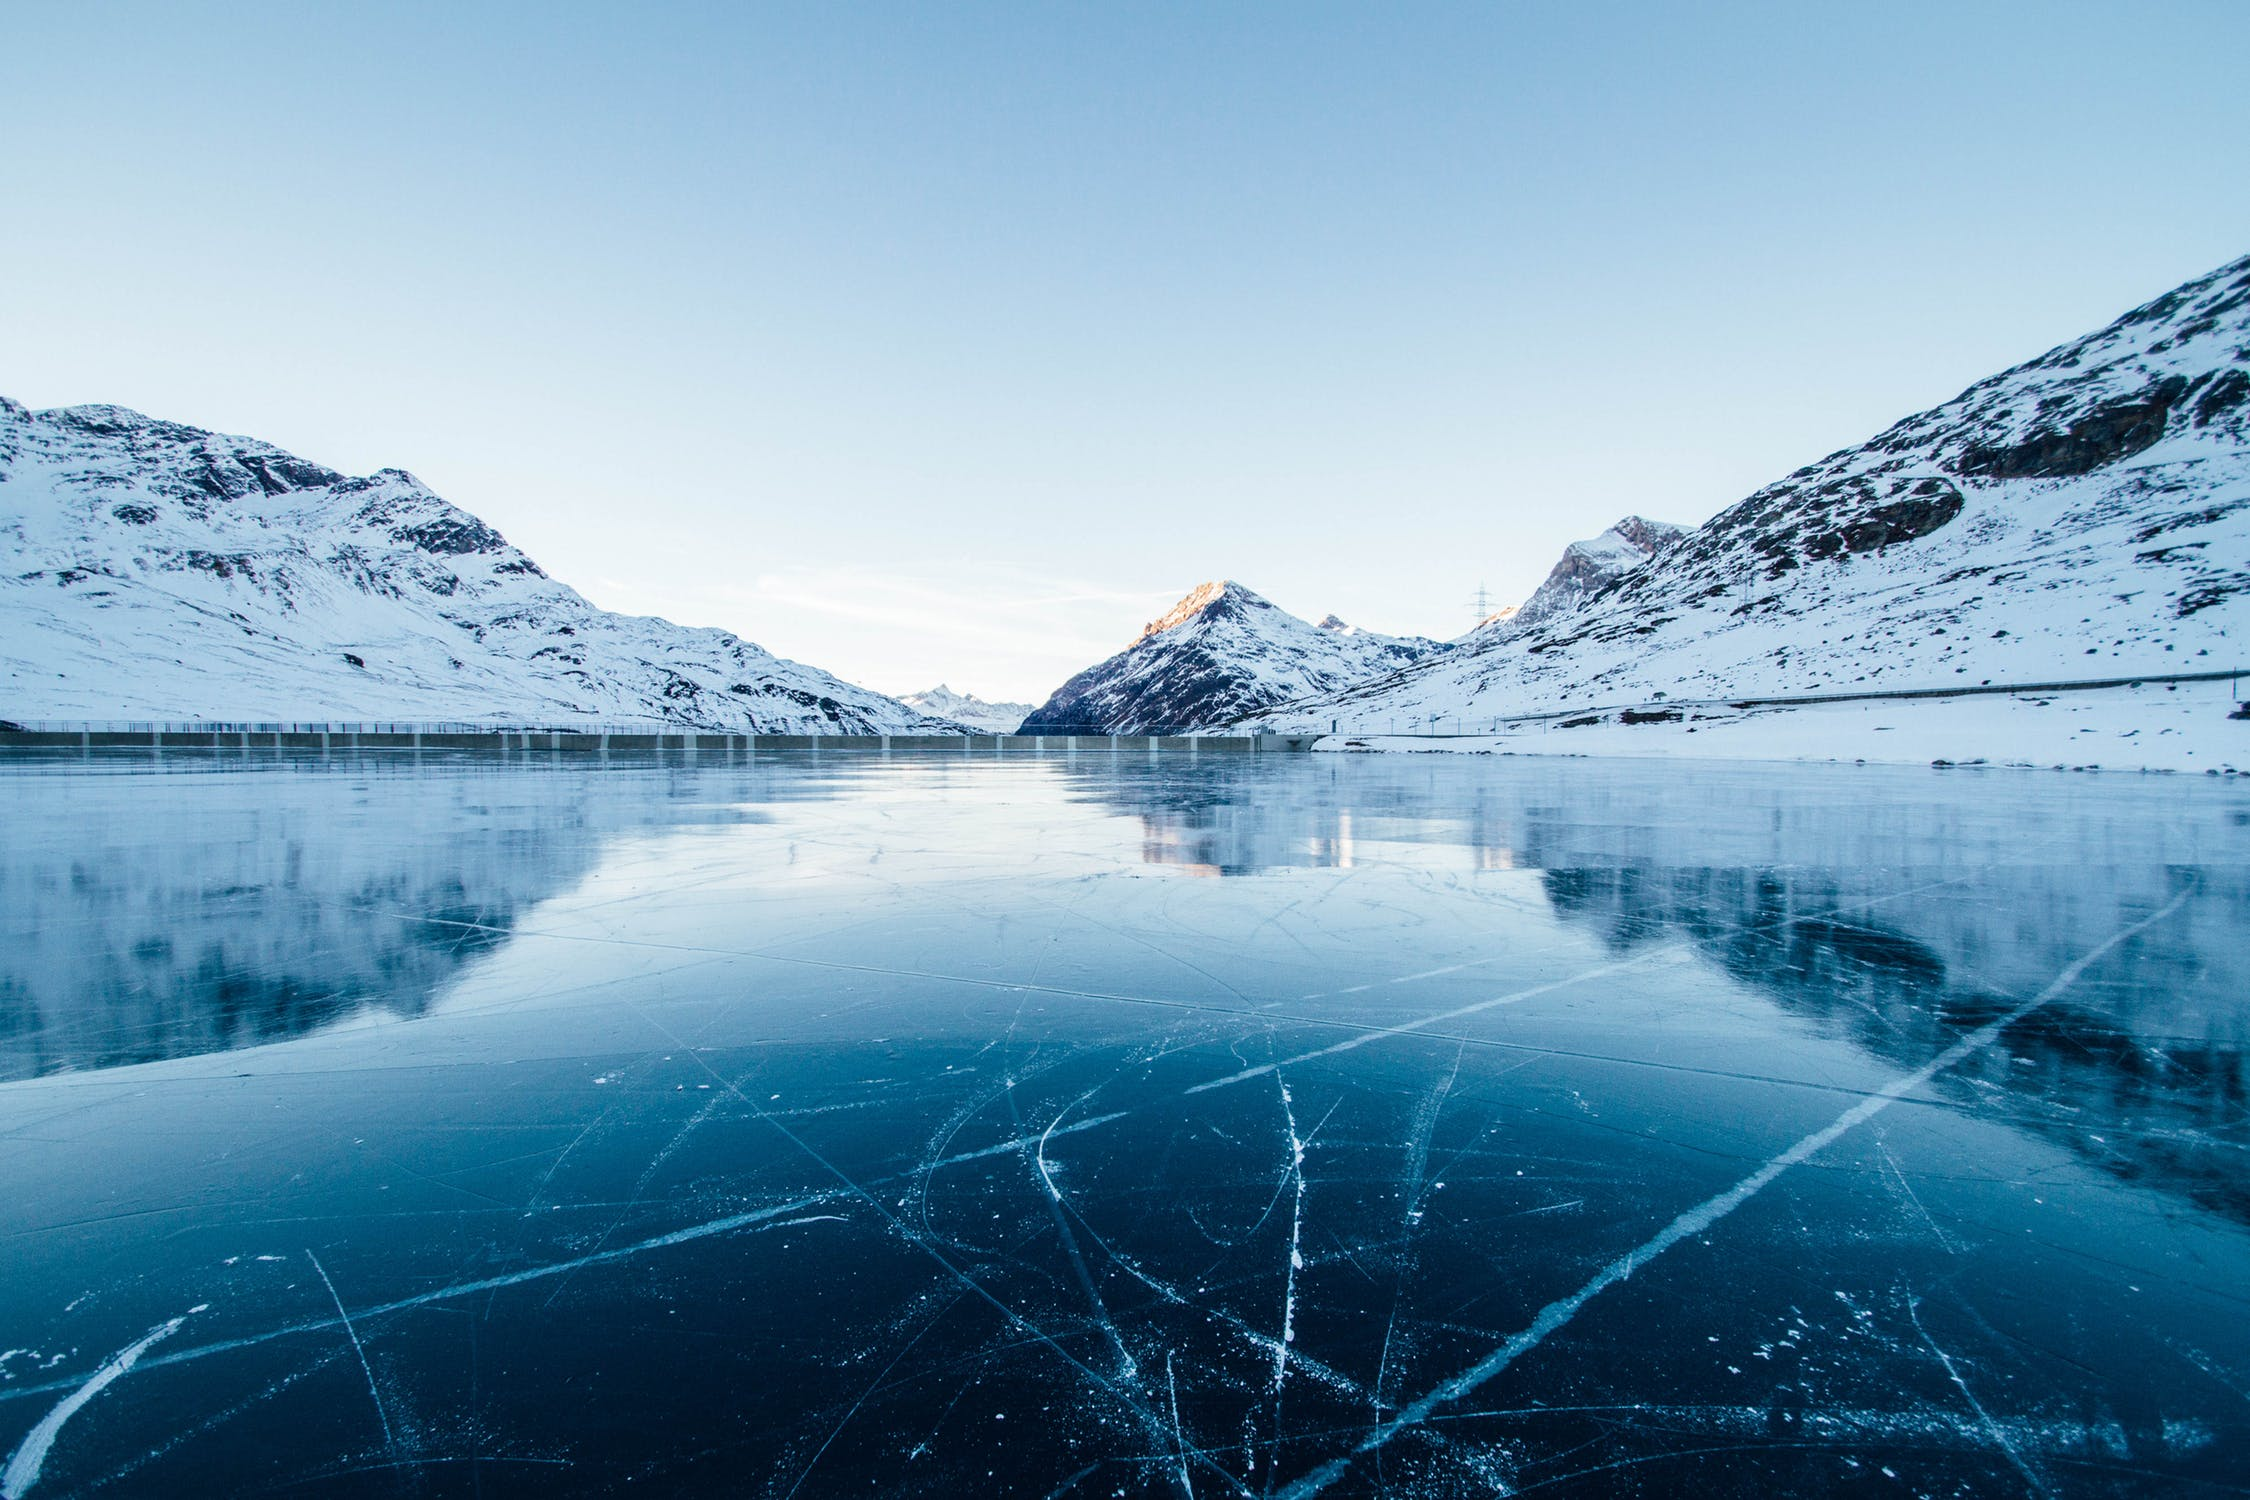 Ice covered lake surrounded by snowy mountains